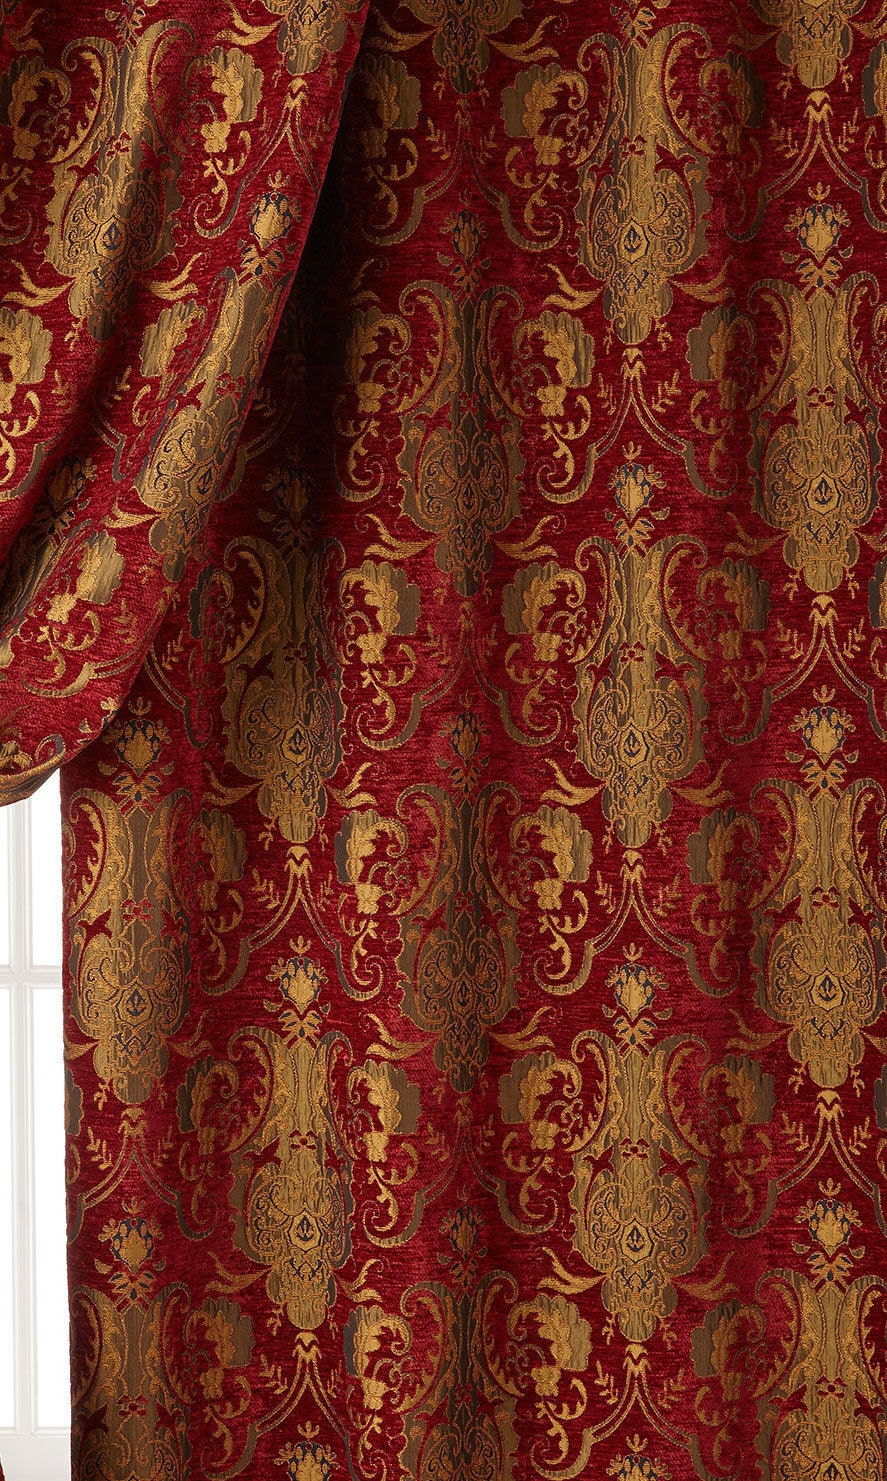 Chenille damask fabric renaissance home decor upholstery - Telas para tapizar sillones ...